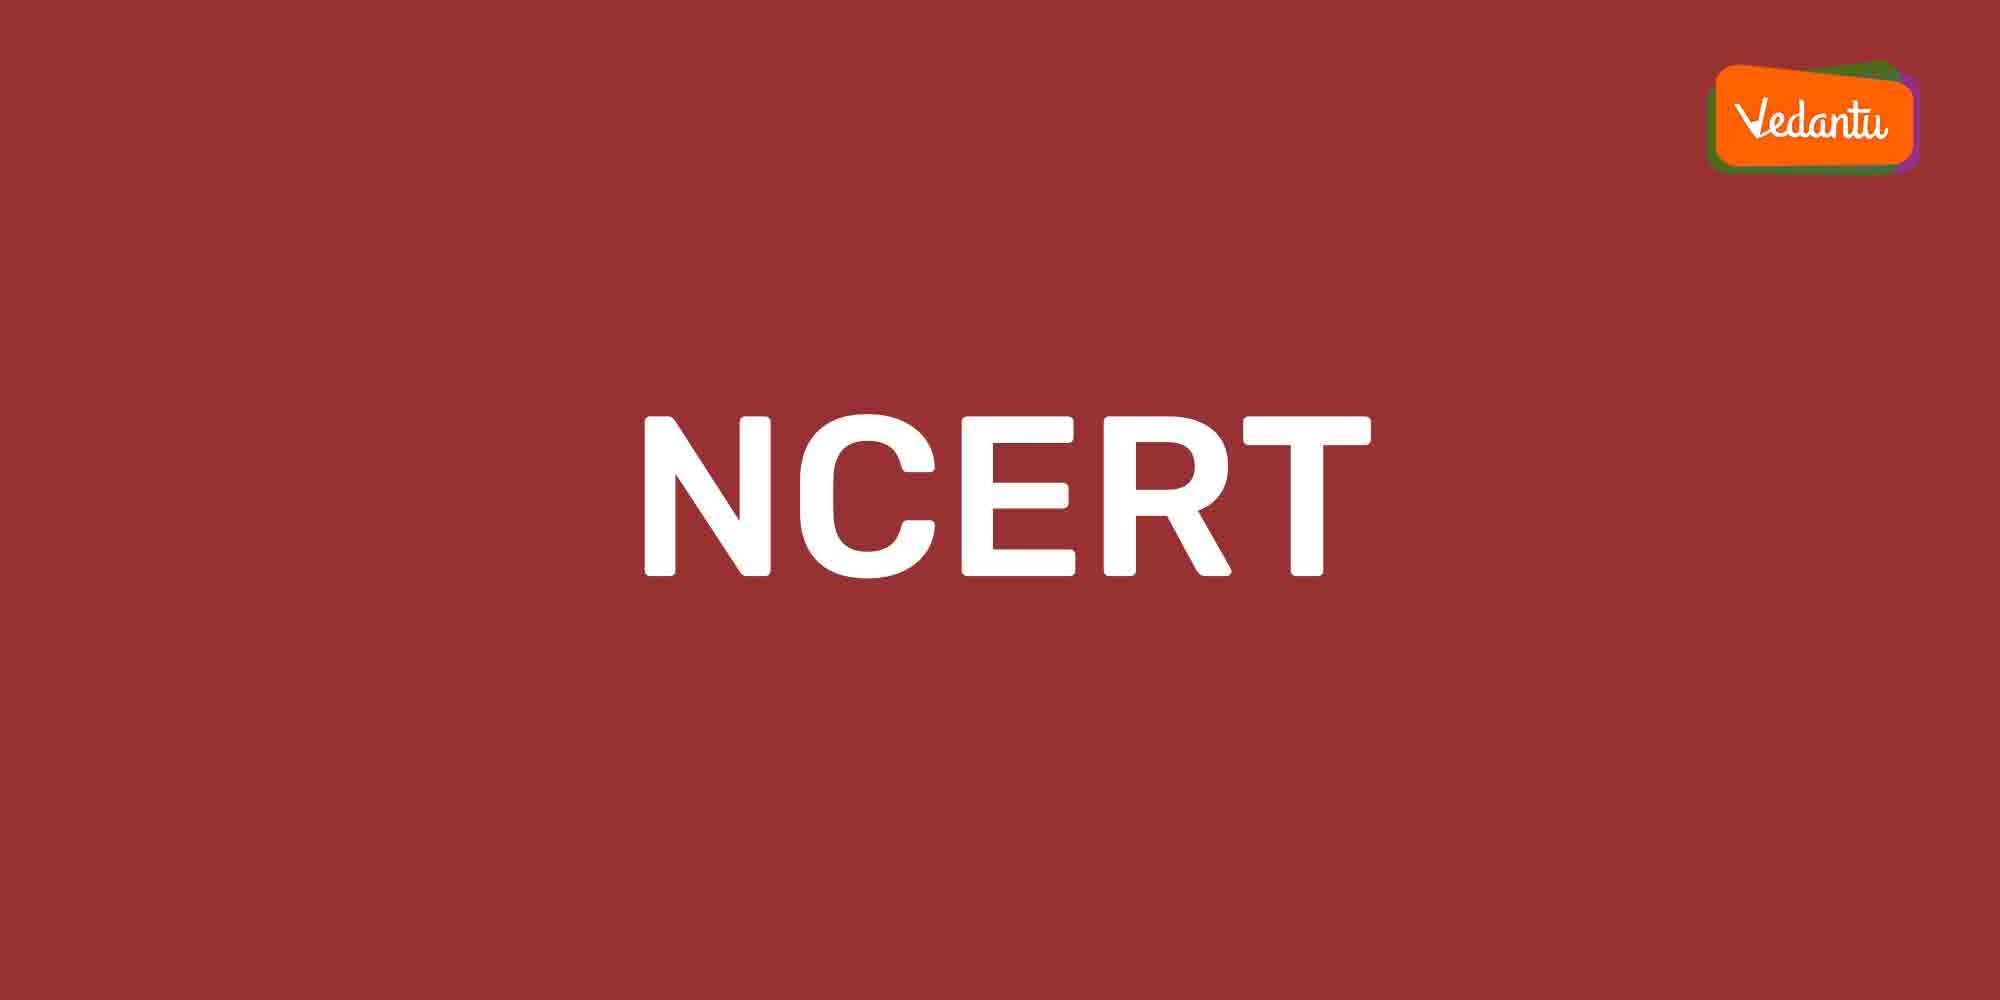 How To Get The Online Source Of NCERT Books Content